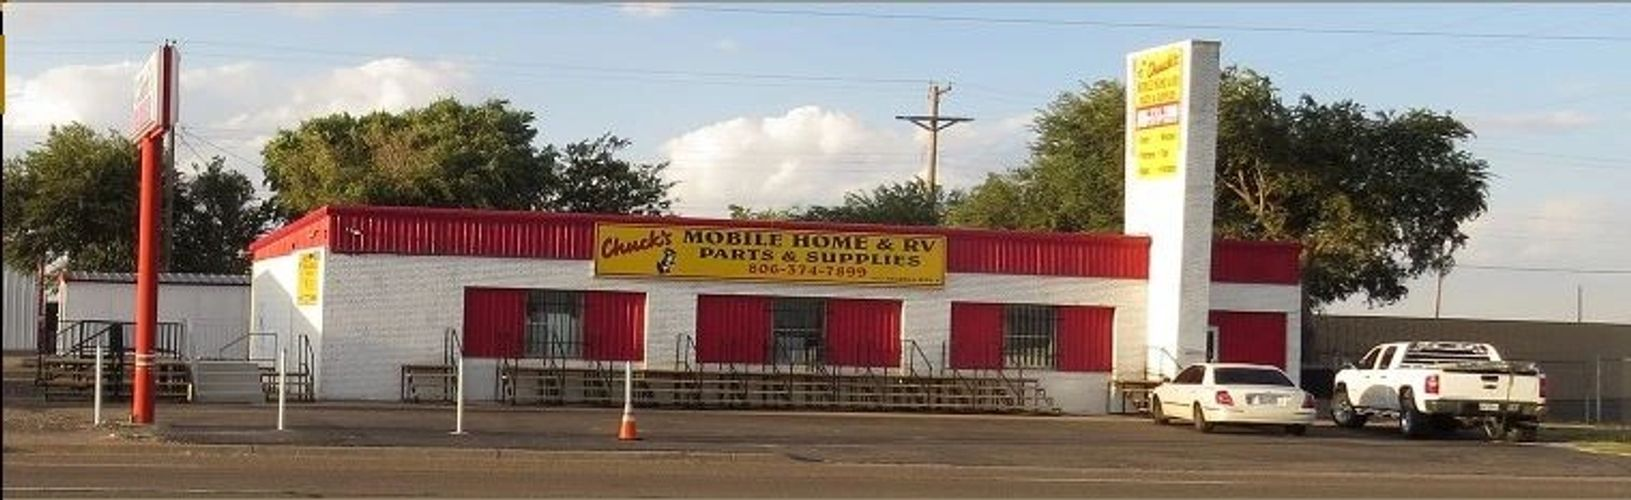 Amarillo Mobile Home and RV Parts and Supply, Chucks Mobile Home and RV Supply. Amarillo Texas